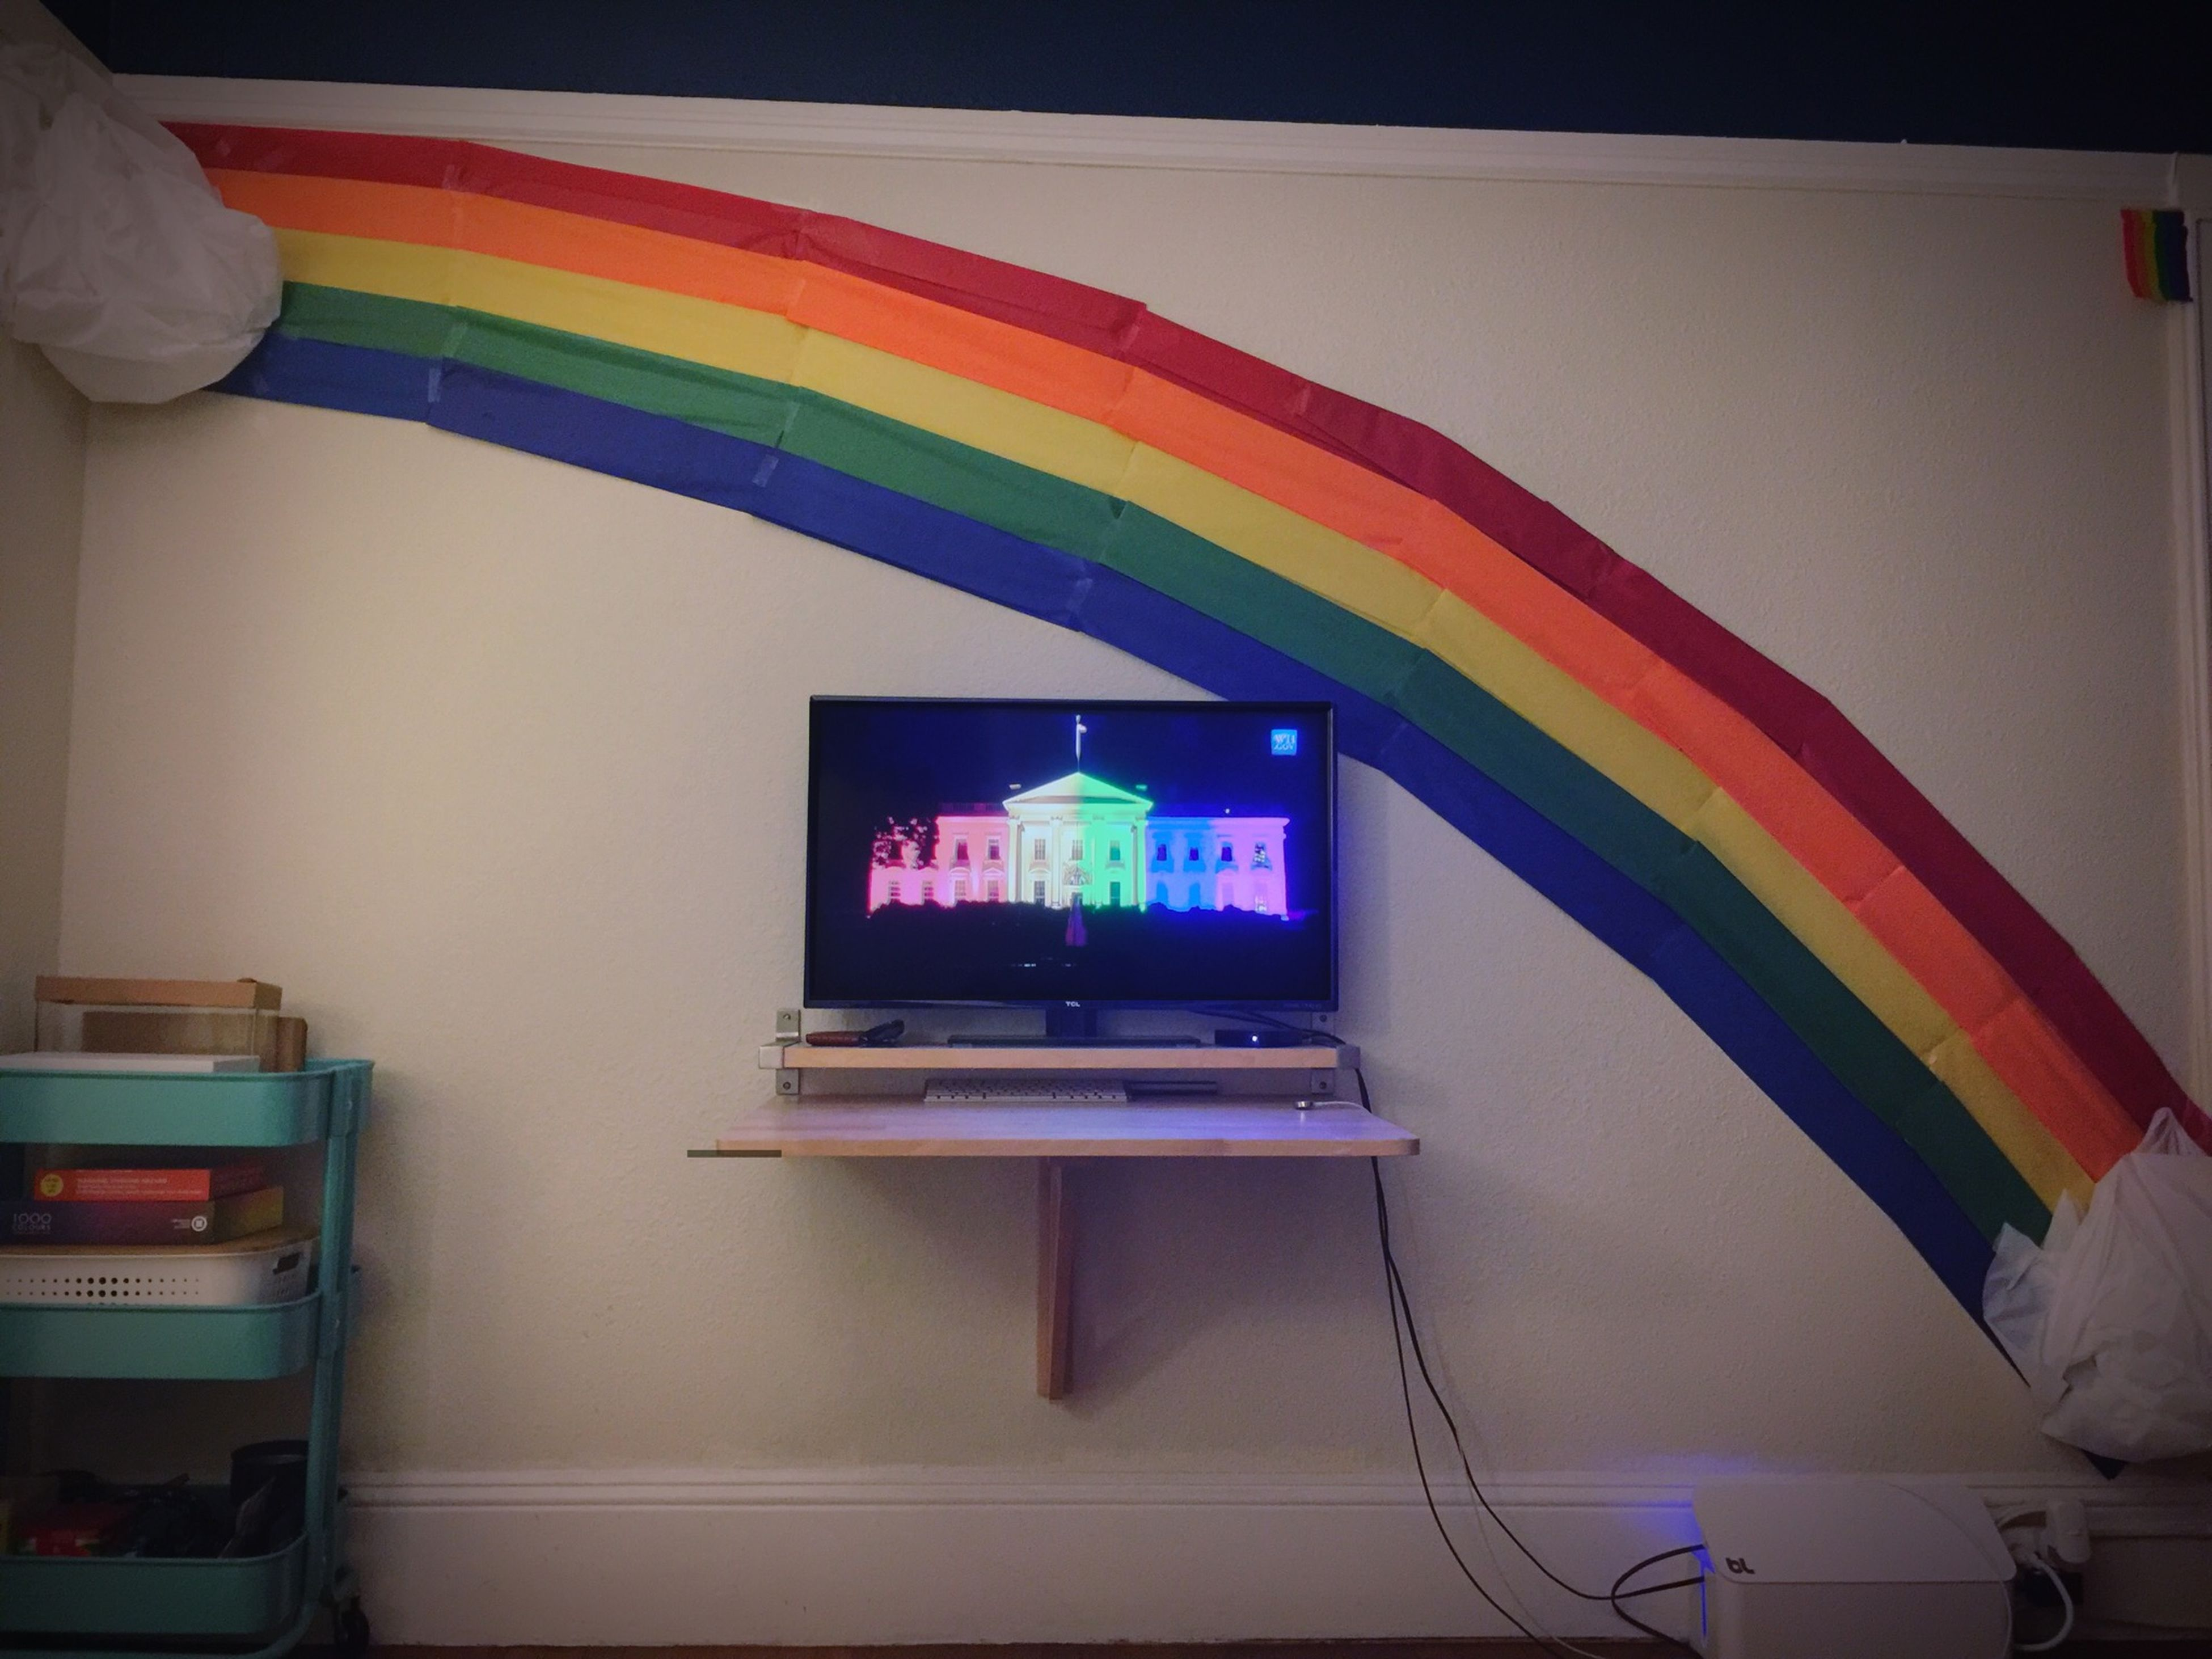 Sometimes, when Marriage Equality becomes the law of the land, you make a giant Rainbow in your apartment to celebrate! Happy Pride 2015 San Francisco